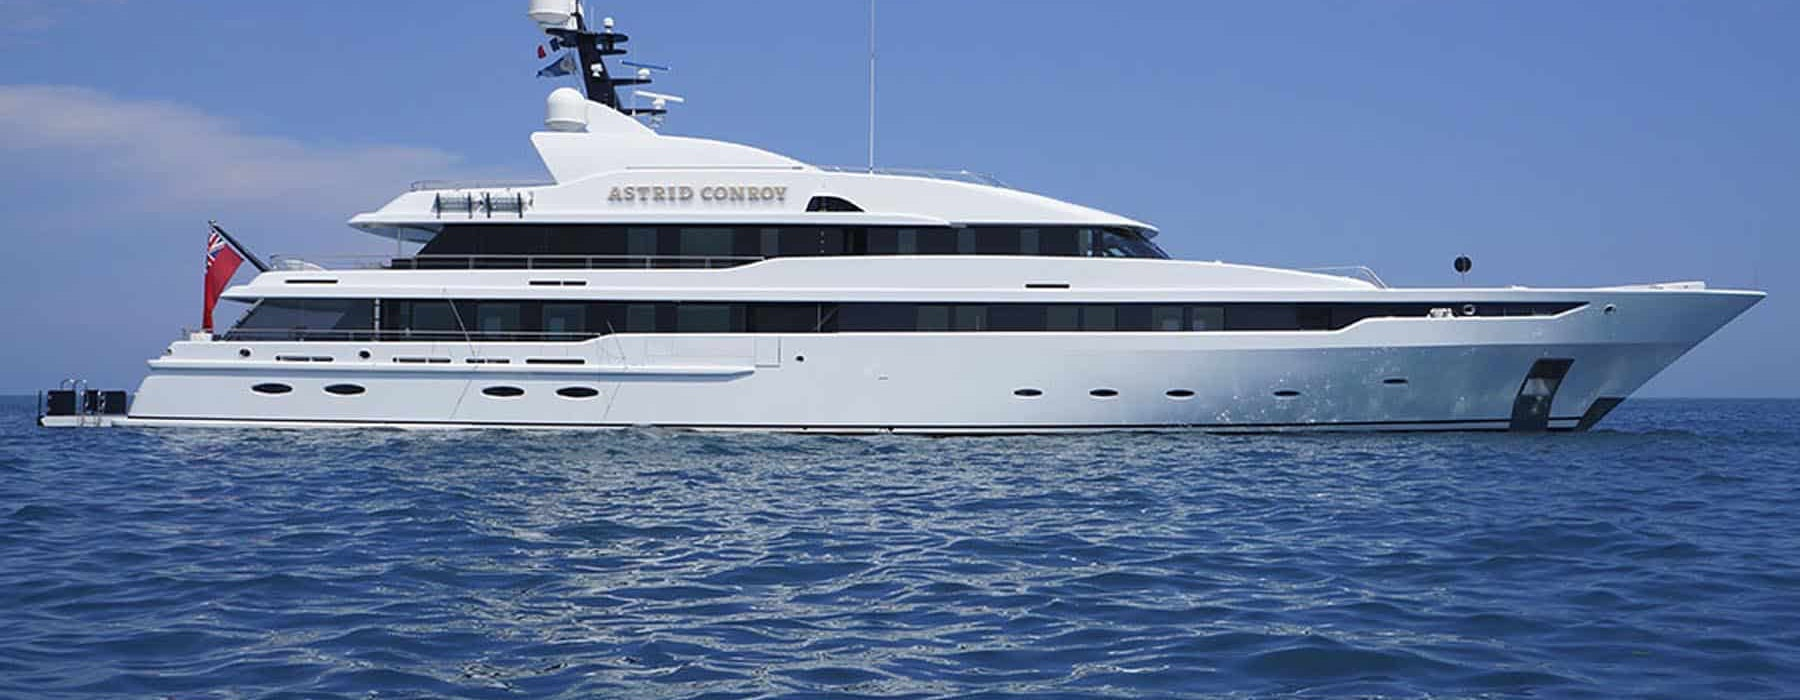 Astrid Conroy perfect Yacht, 2 million price reduction